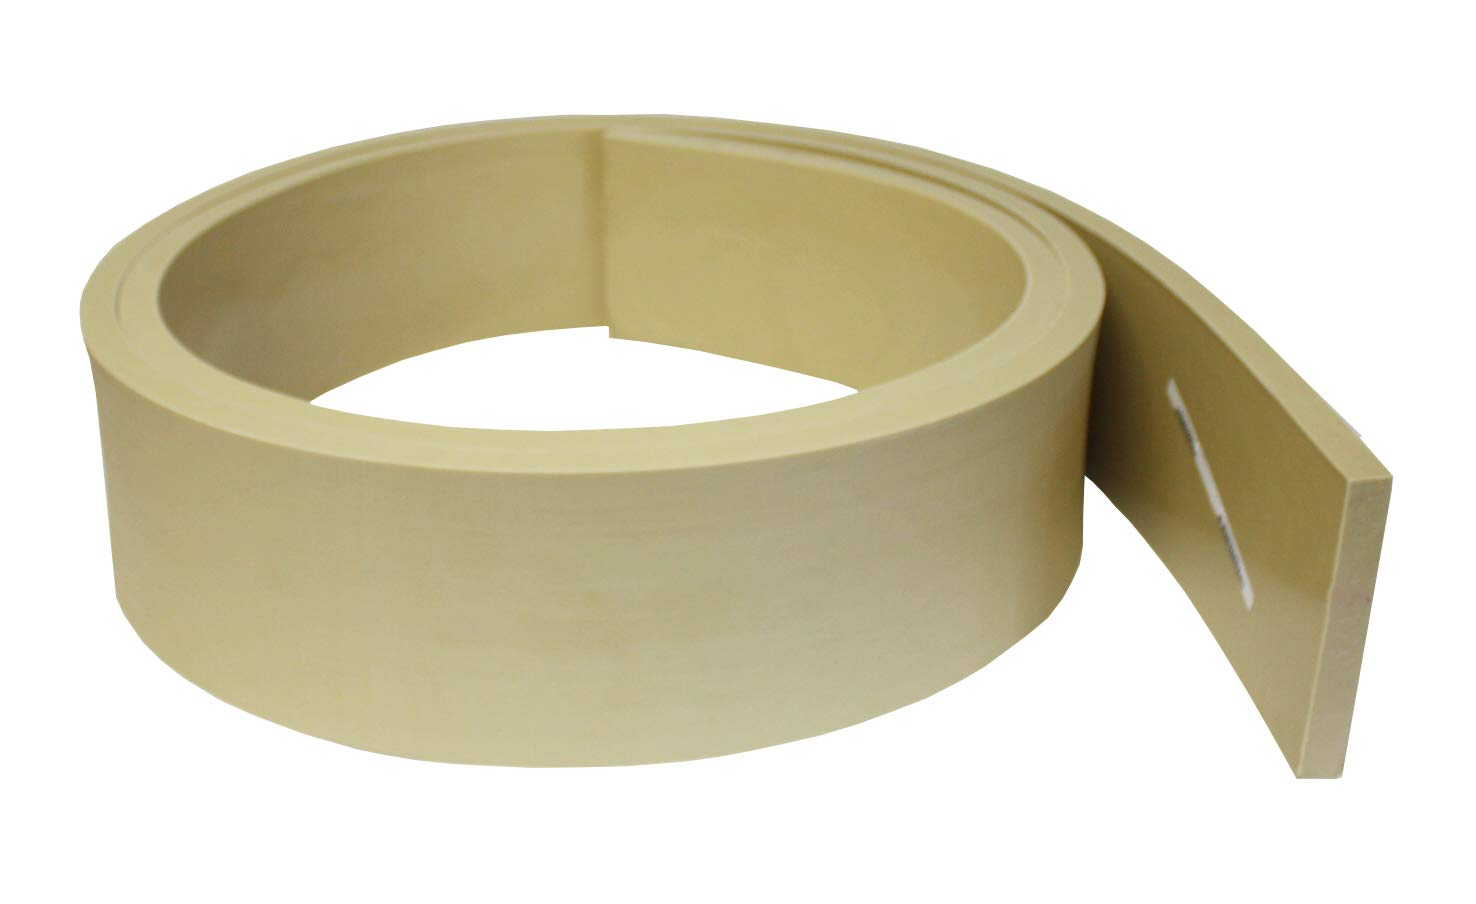 Flexible Moulding - Flexible Flatstock Moulding - WM1X6-3/4'' X 5-1/2'' - 8' Length - Flexible Trim by Duraflex by Resinart